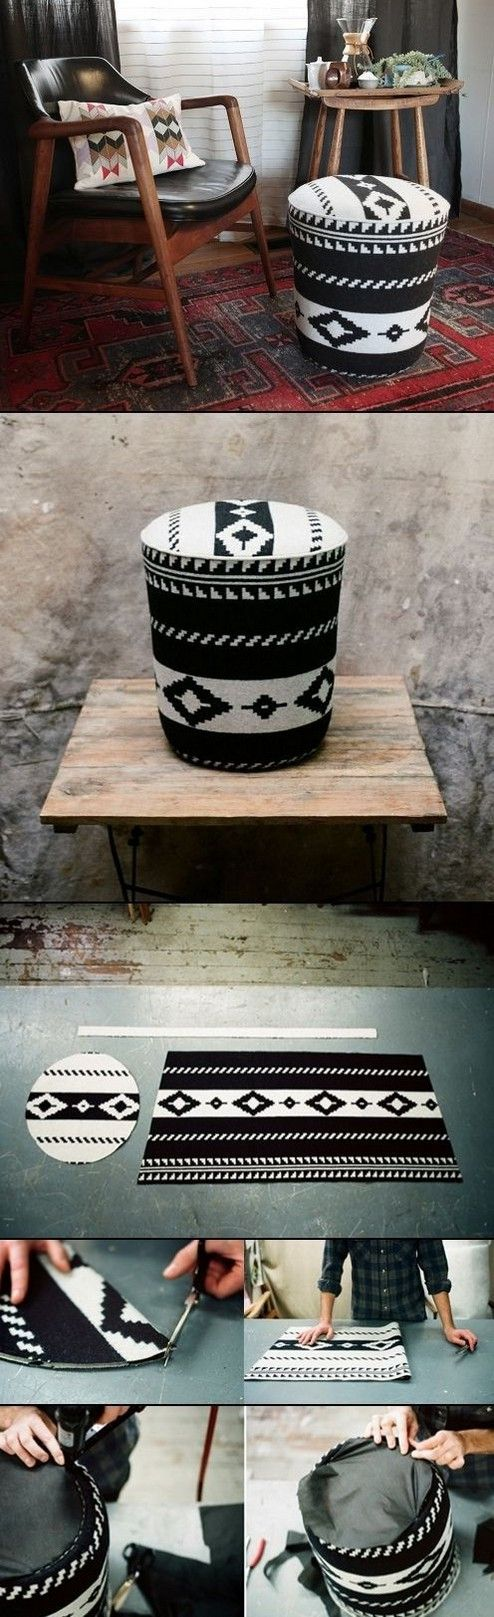 DIY UTILITY BUCKET OTTOMAN of course aztec…because i am obsessed with everything aztec and tribal!!